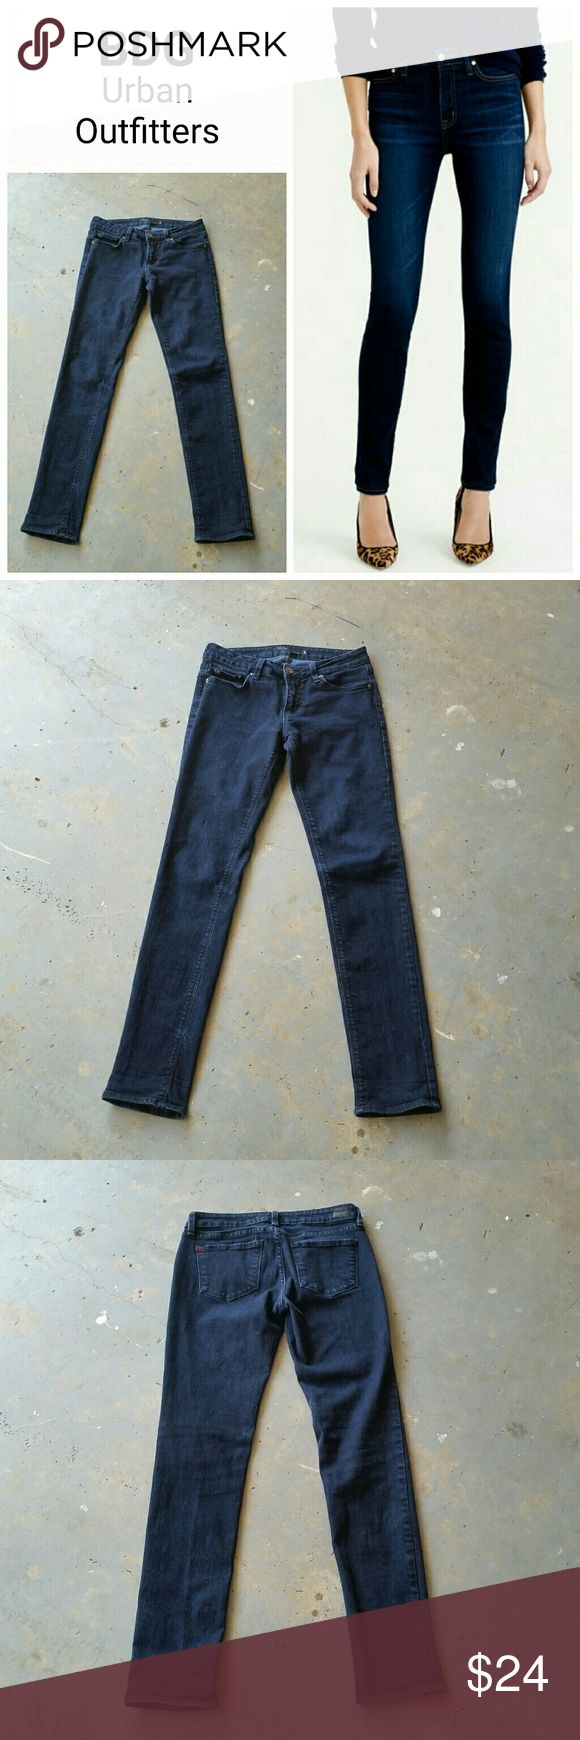 """BDG URBAN OUTFITTERS SKINNY STRETCH DARK JEANS BDG URBAN OUTFITTERS skinny stretch dark wash jeans.  98% cotton.  2% spandex.  Made in USA. 29"""" waist.  8.5"""" rise.  33"""" inseam.  6"""" across ankle. Excellent condition! BDG Jeans Skinny"""